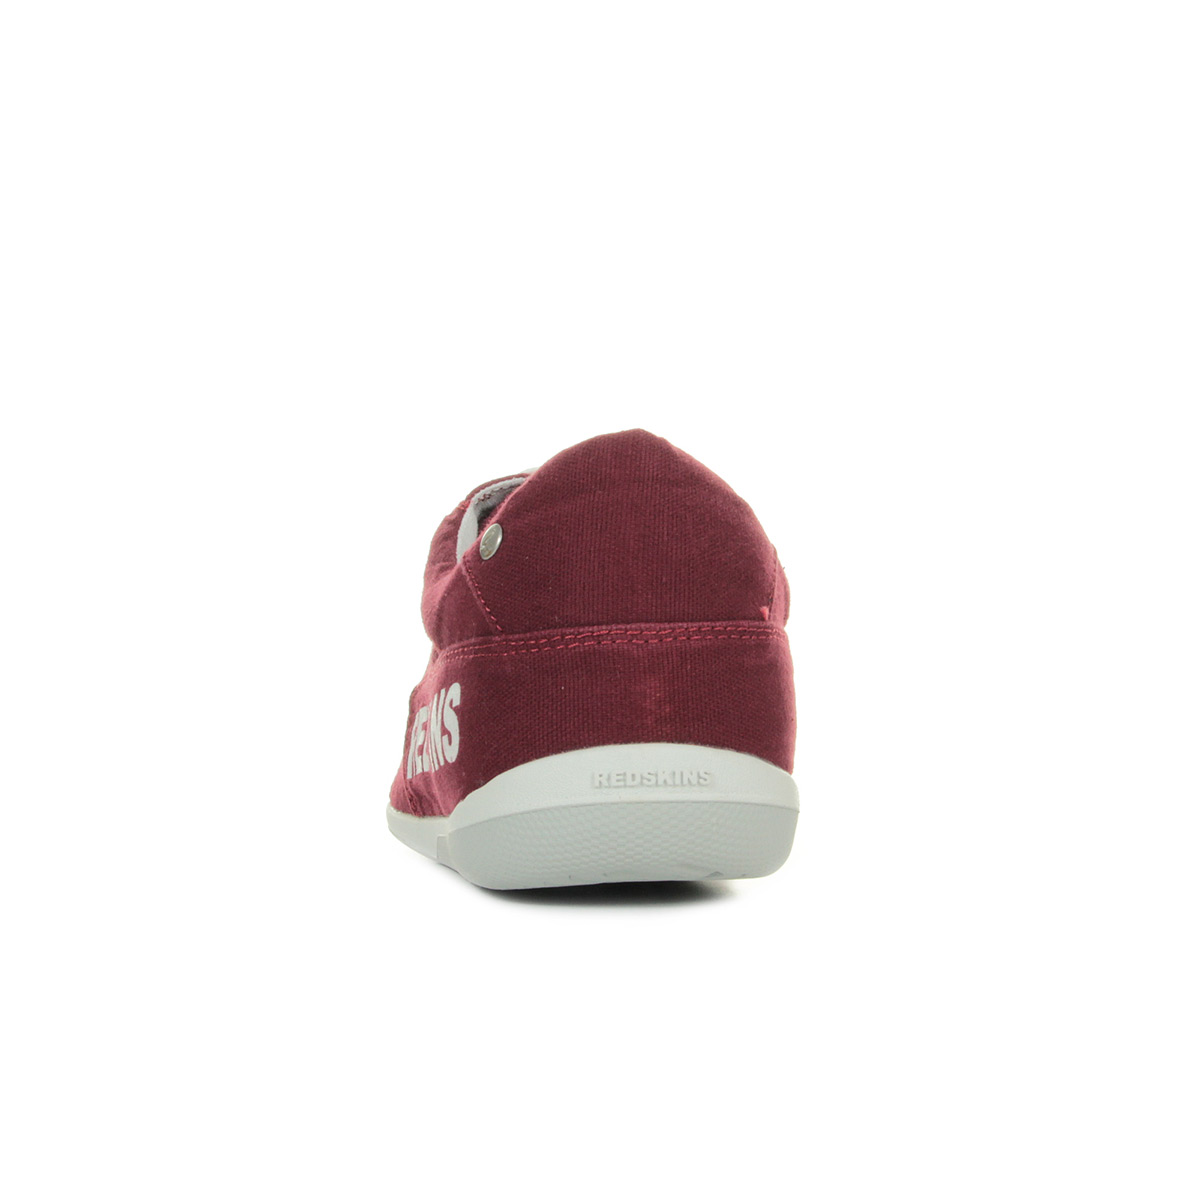 Redskins Hobbs 445 Bordeaux Blanc TK441VH445, Baskets mode homme